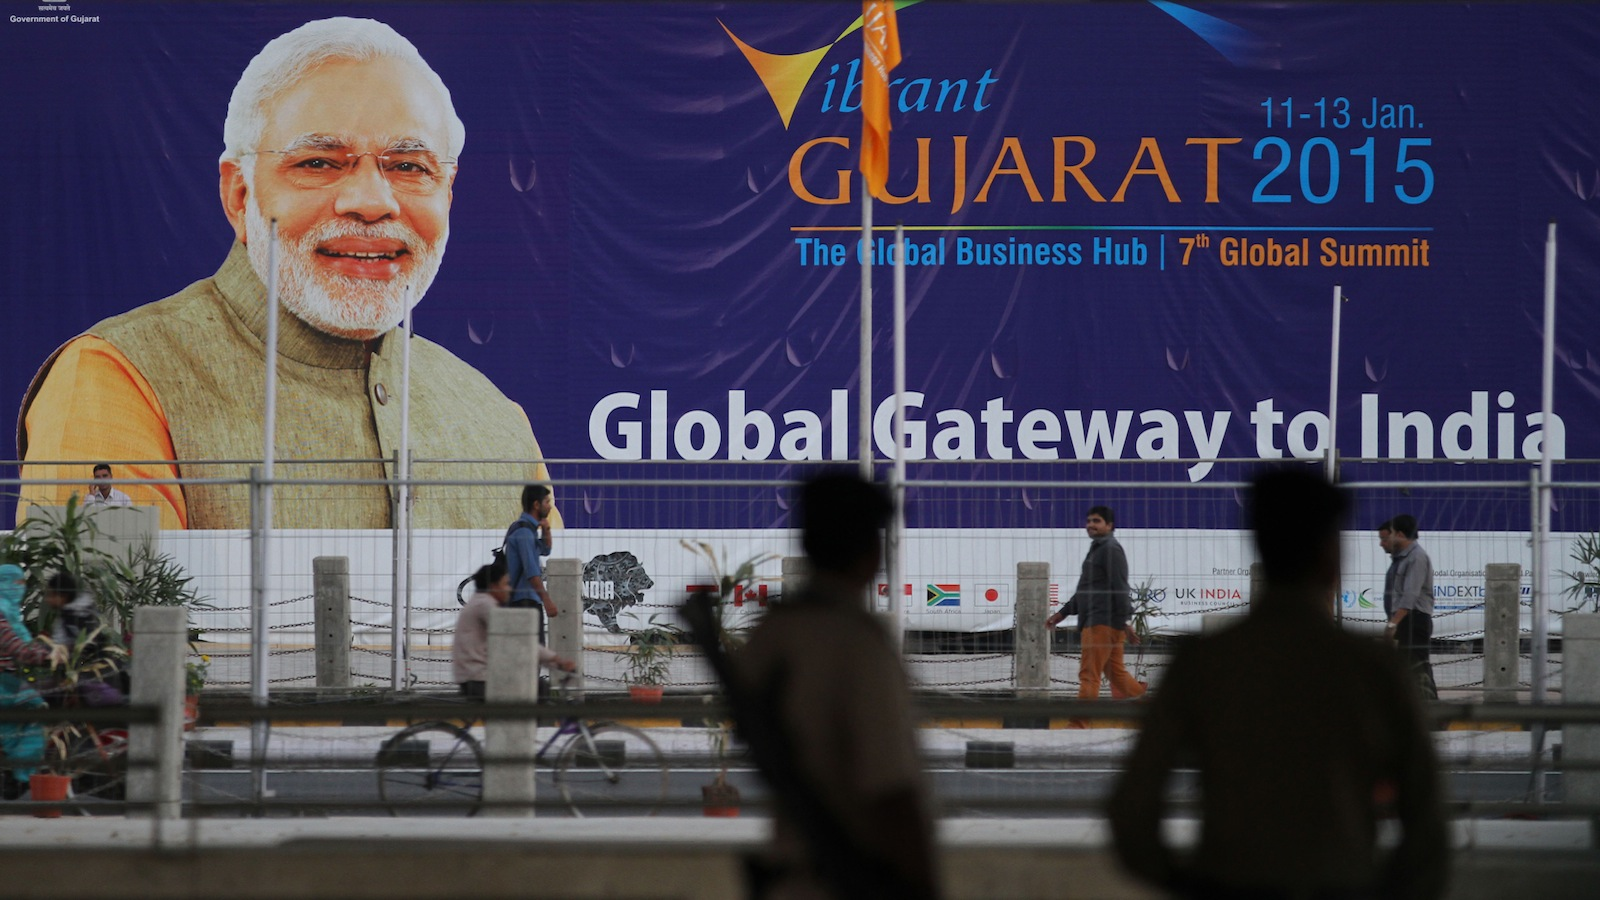 Indian policemen stand guard as people walk past a hoarding with a portrait of Indian Prime Minister Narendra Modi, advertising the Vibrant Gujarat Summit 2015 in Gandhinagar, India, Friday, Jan. 9, 2015. U.S. Secretary of State John Kerry is scheduled to attend the three-day summit that starts Sunday. (AP Photo/ Ajit Solanki)